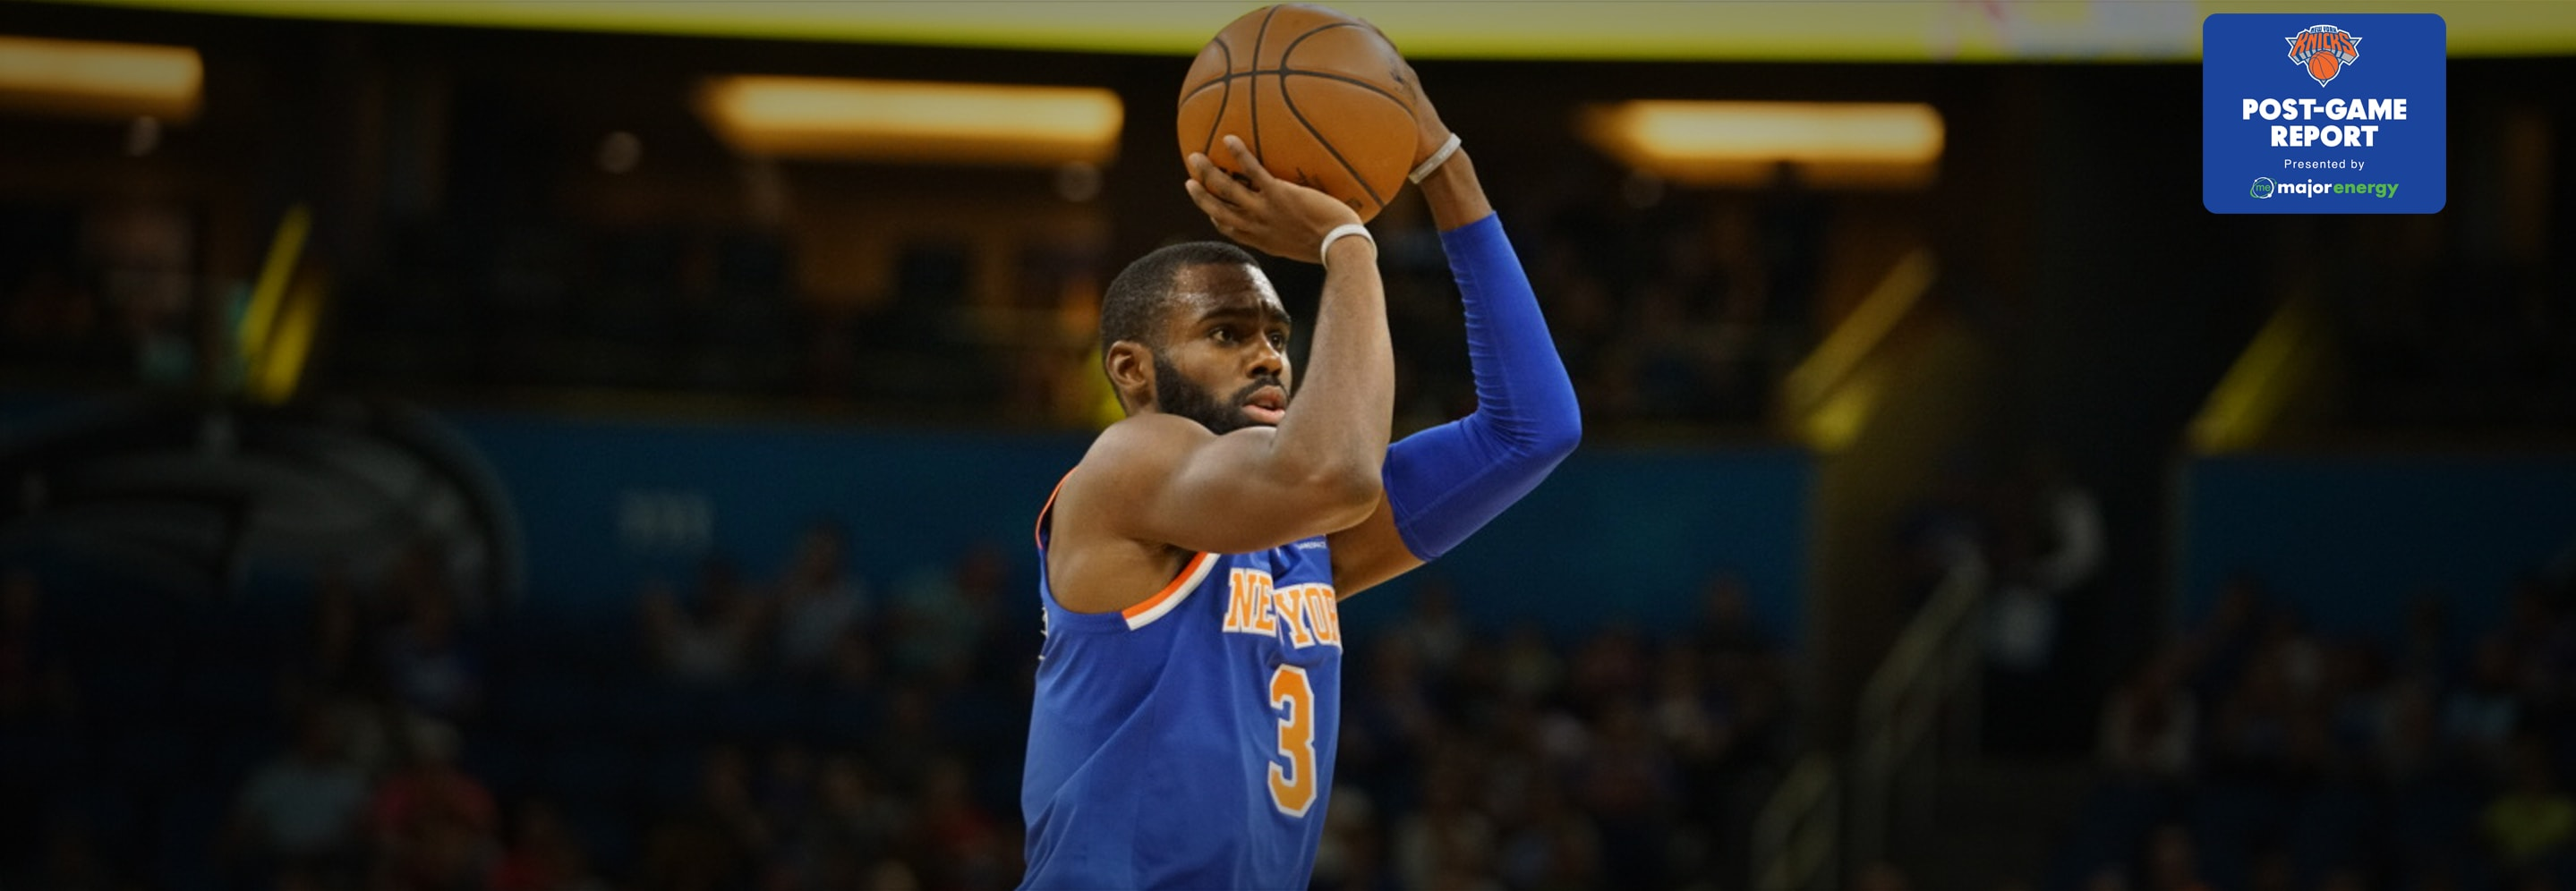 ORL 112 NYK 99: Hardaway Jr. Records First Career Double-Double